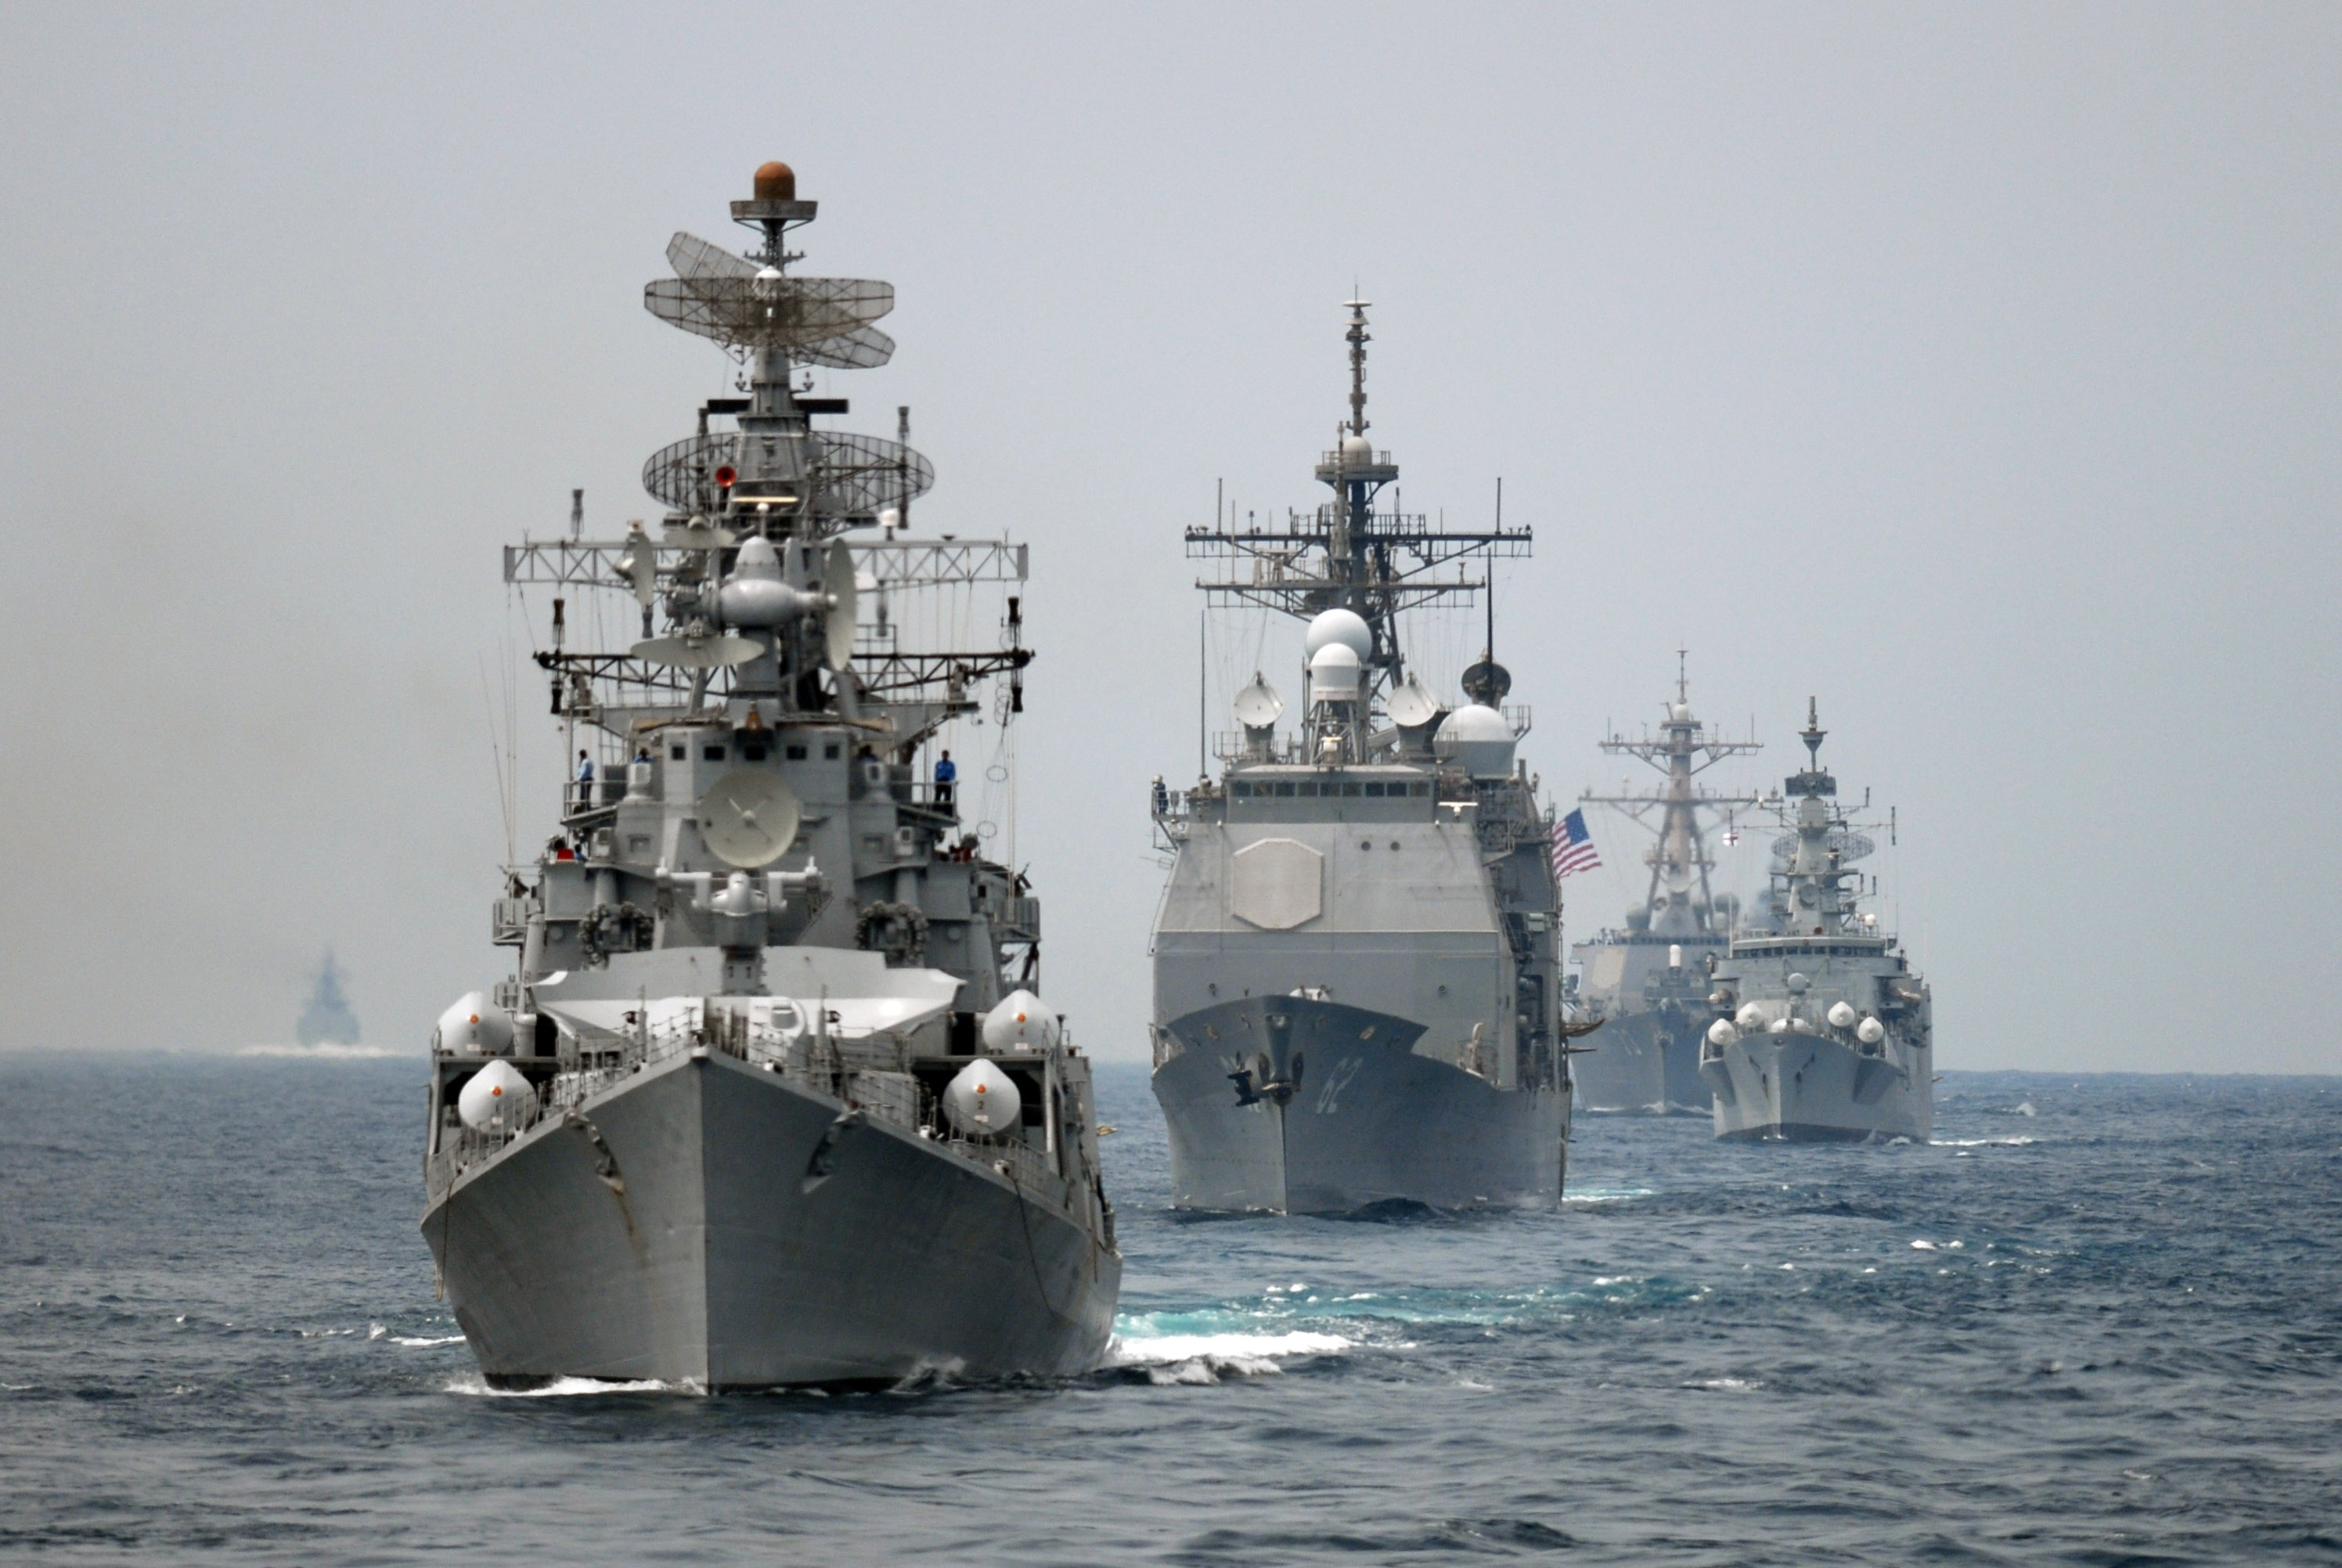 India deploys stealth warships to the South China Sea even as tensions flare in the fragile waters.